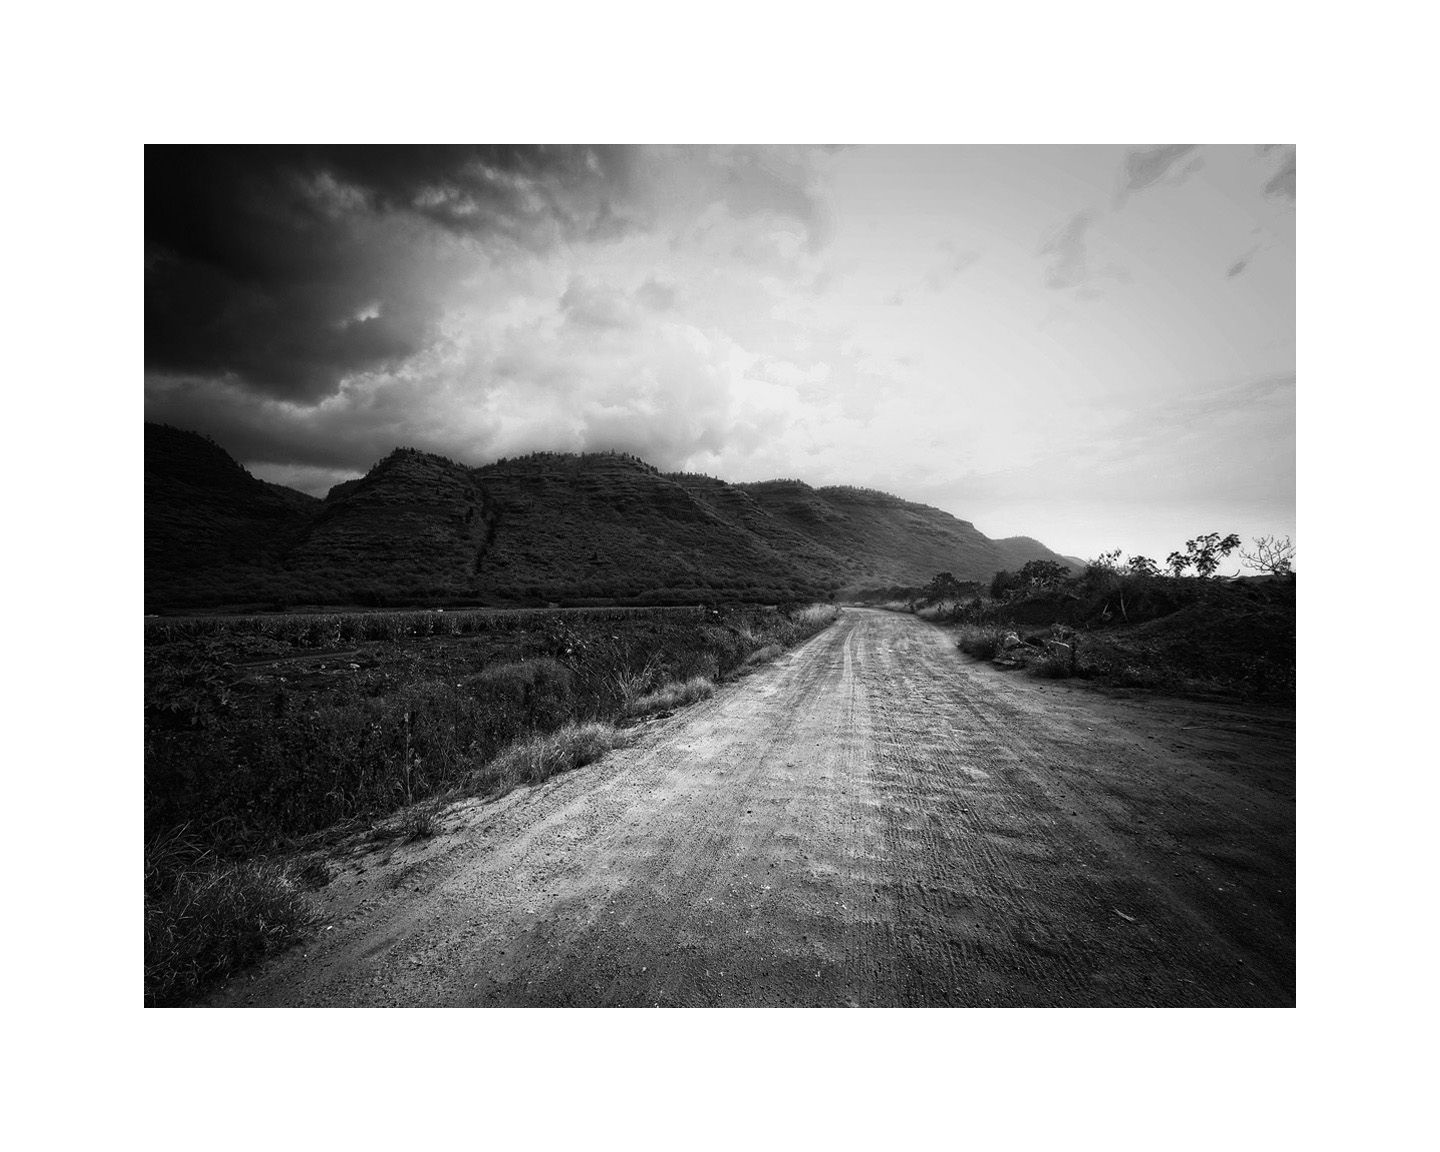 1road_to_barking_sands_16x20_b_w